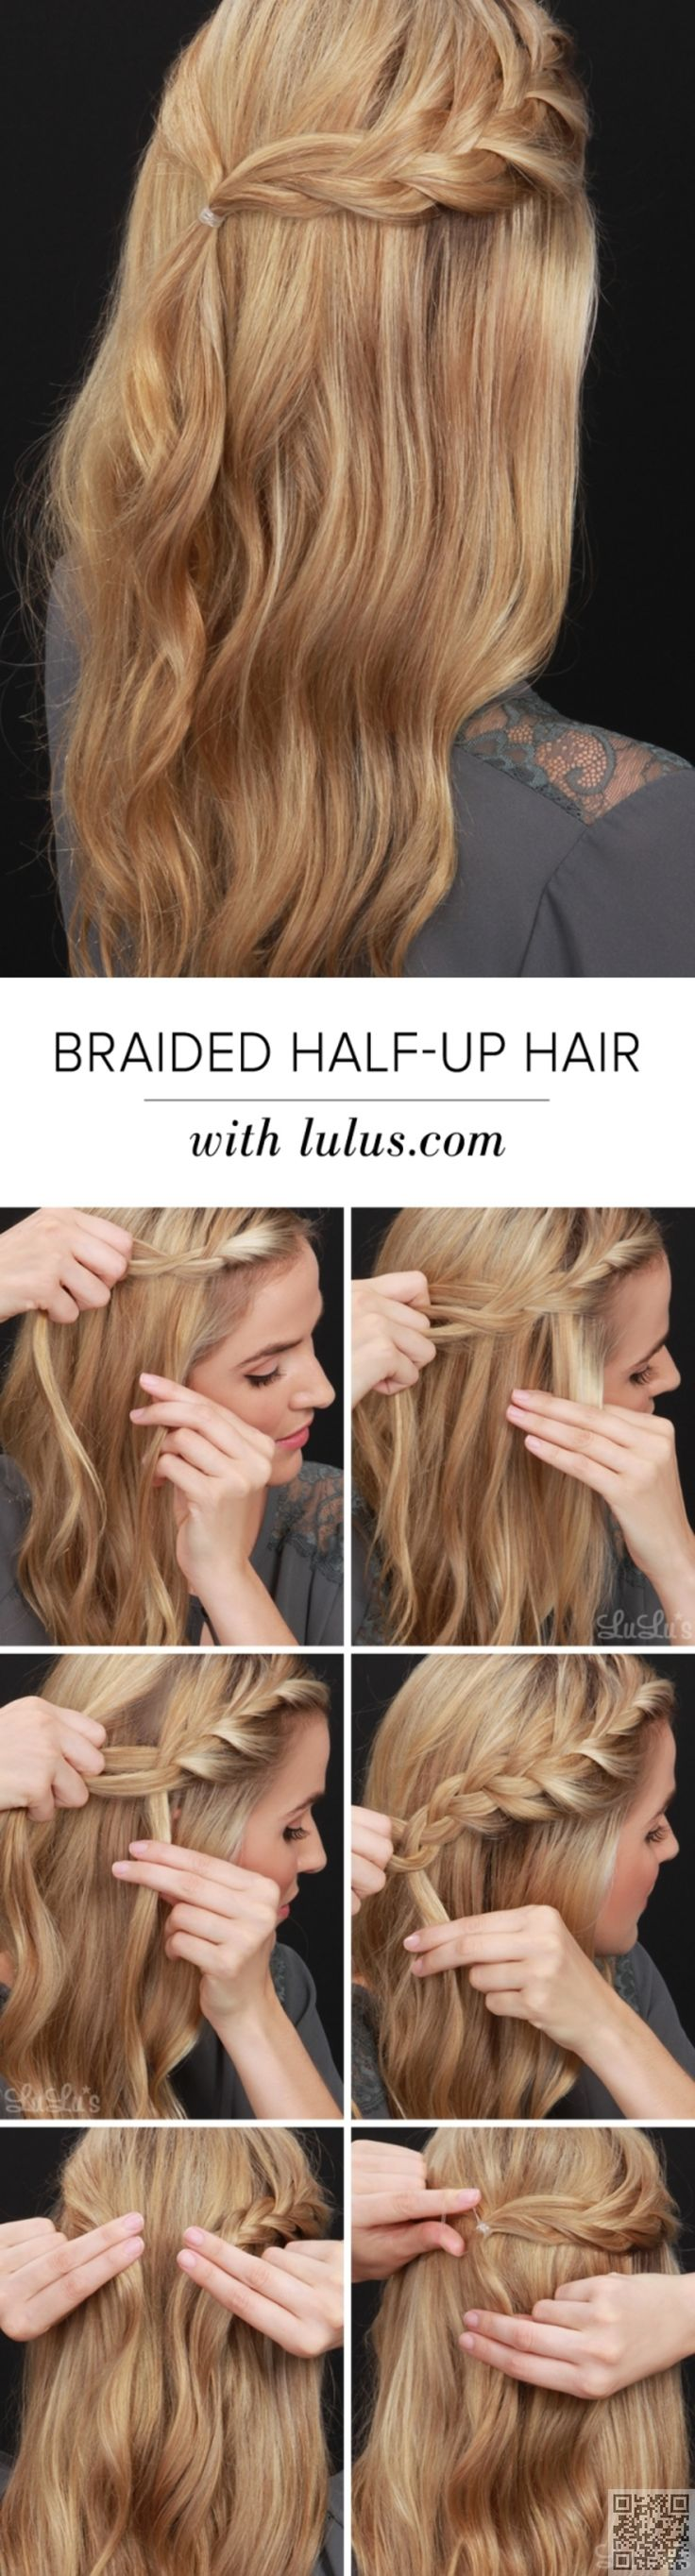 5. #Braided Half-up Hair - So #Sweet for Summer! Try #These 23 Half up, Half down Hair Styles ... → Hair #Braid